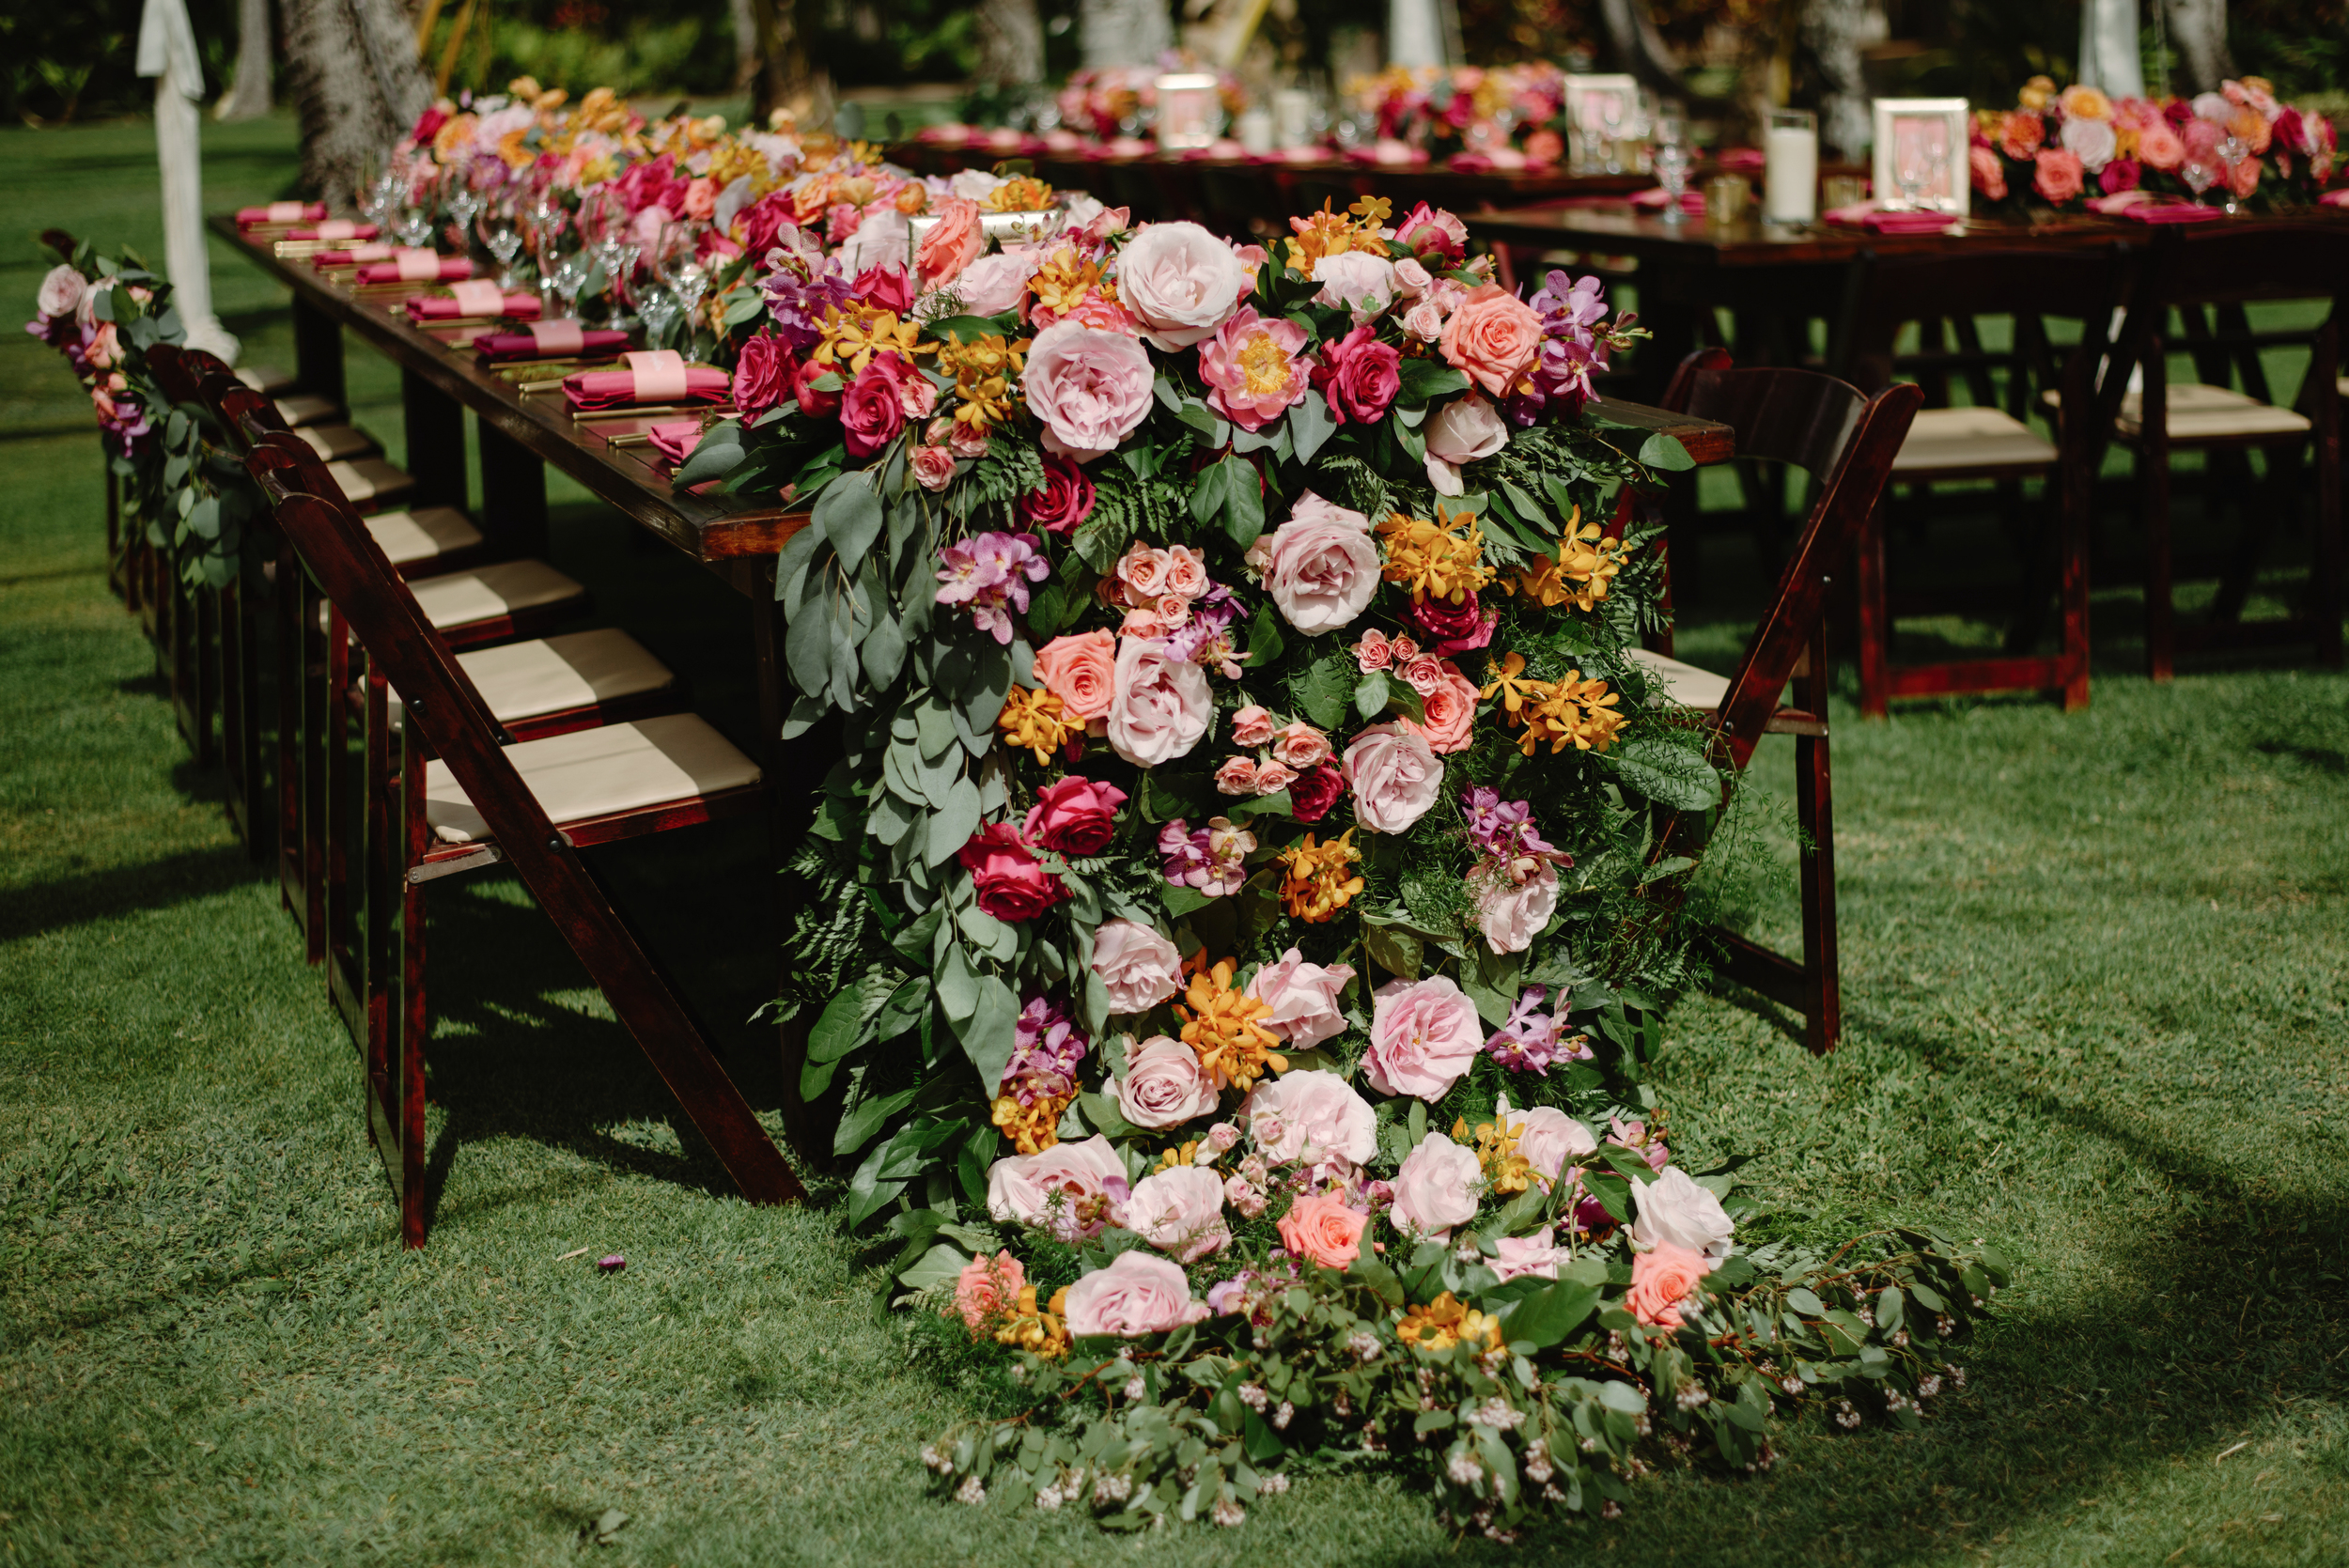 Table Floral Skirt Florals by Passion Roots | June Photography | Oahu, Hawaii